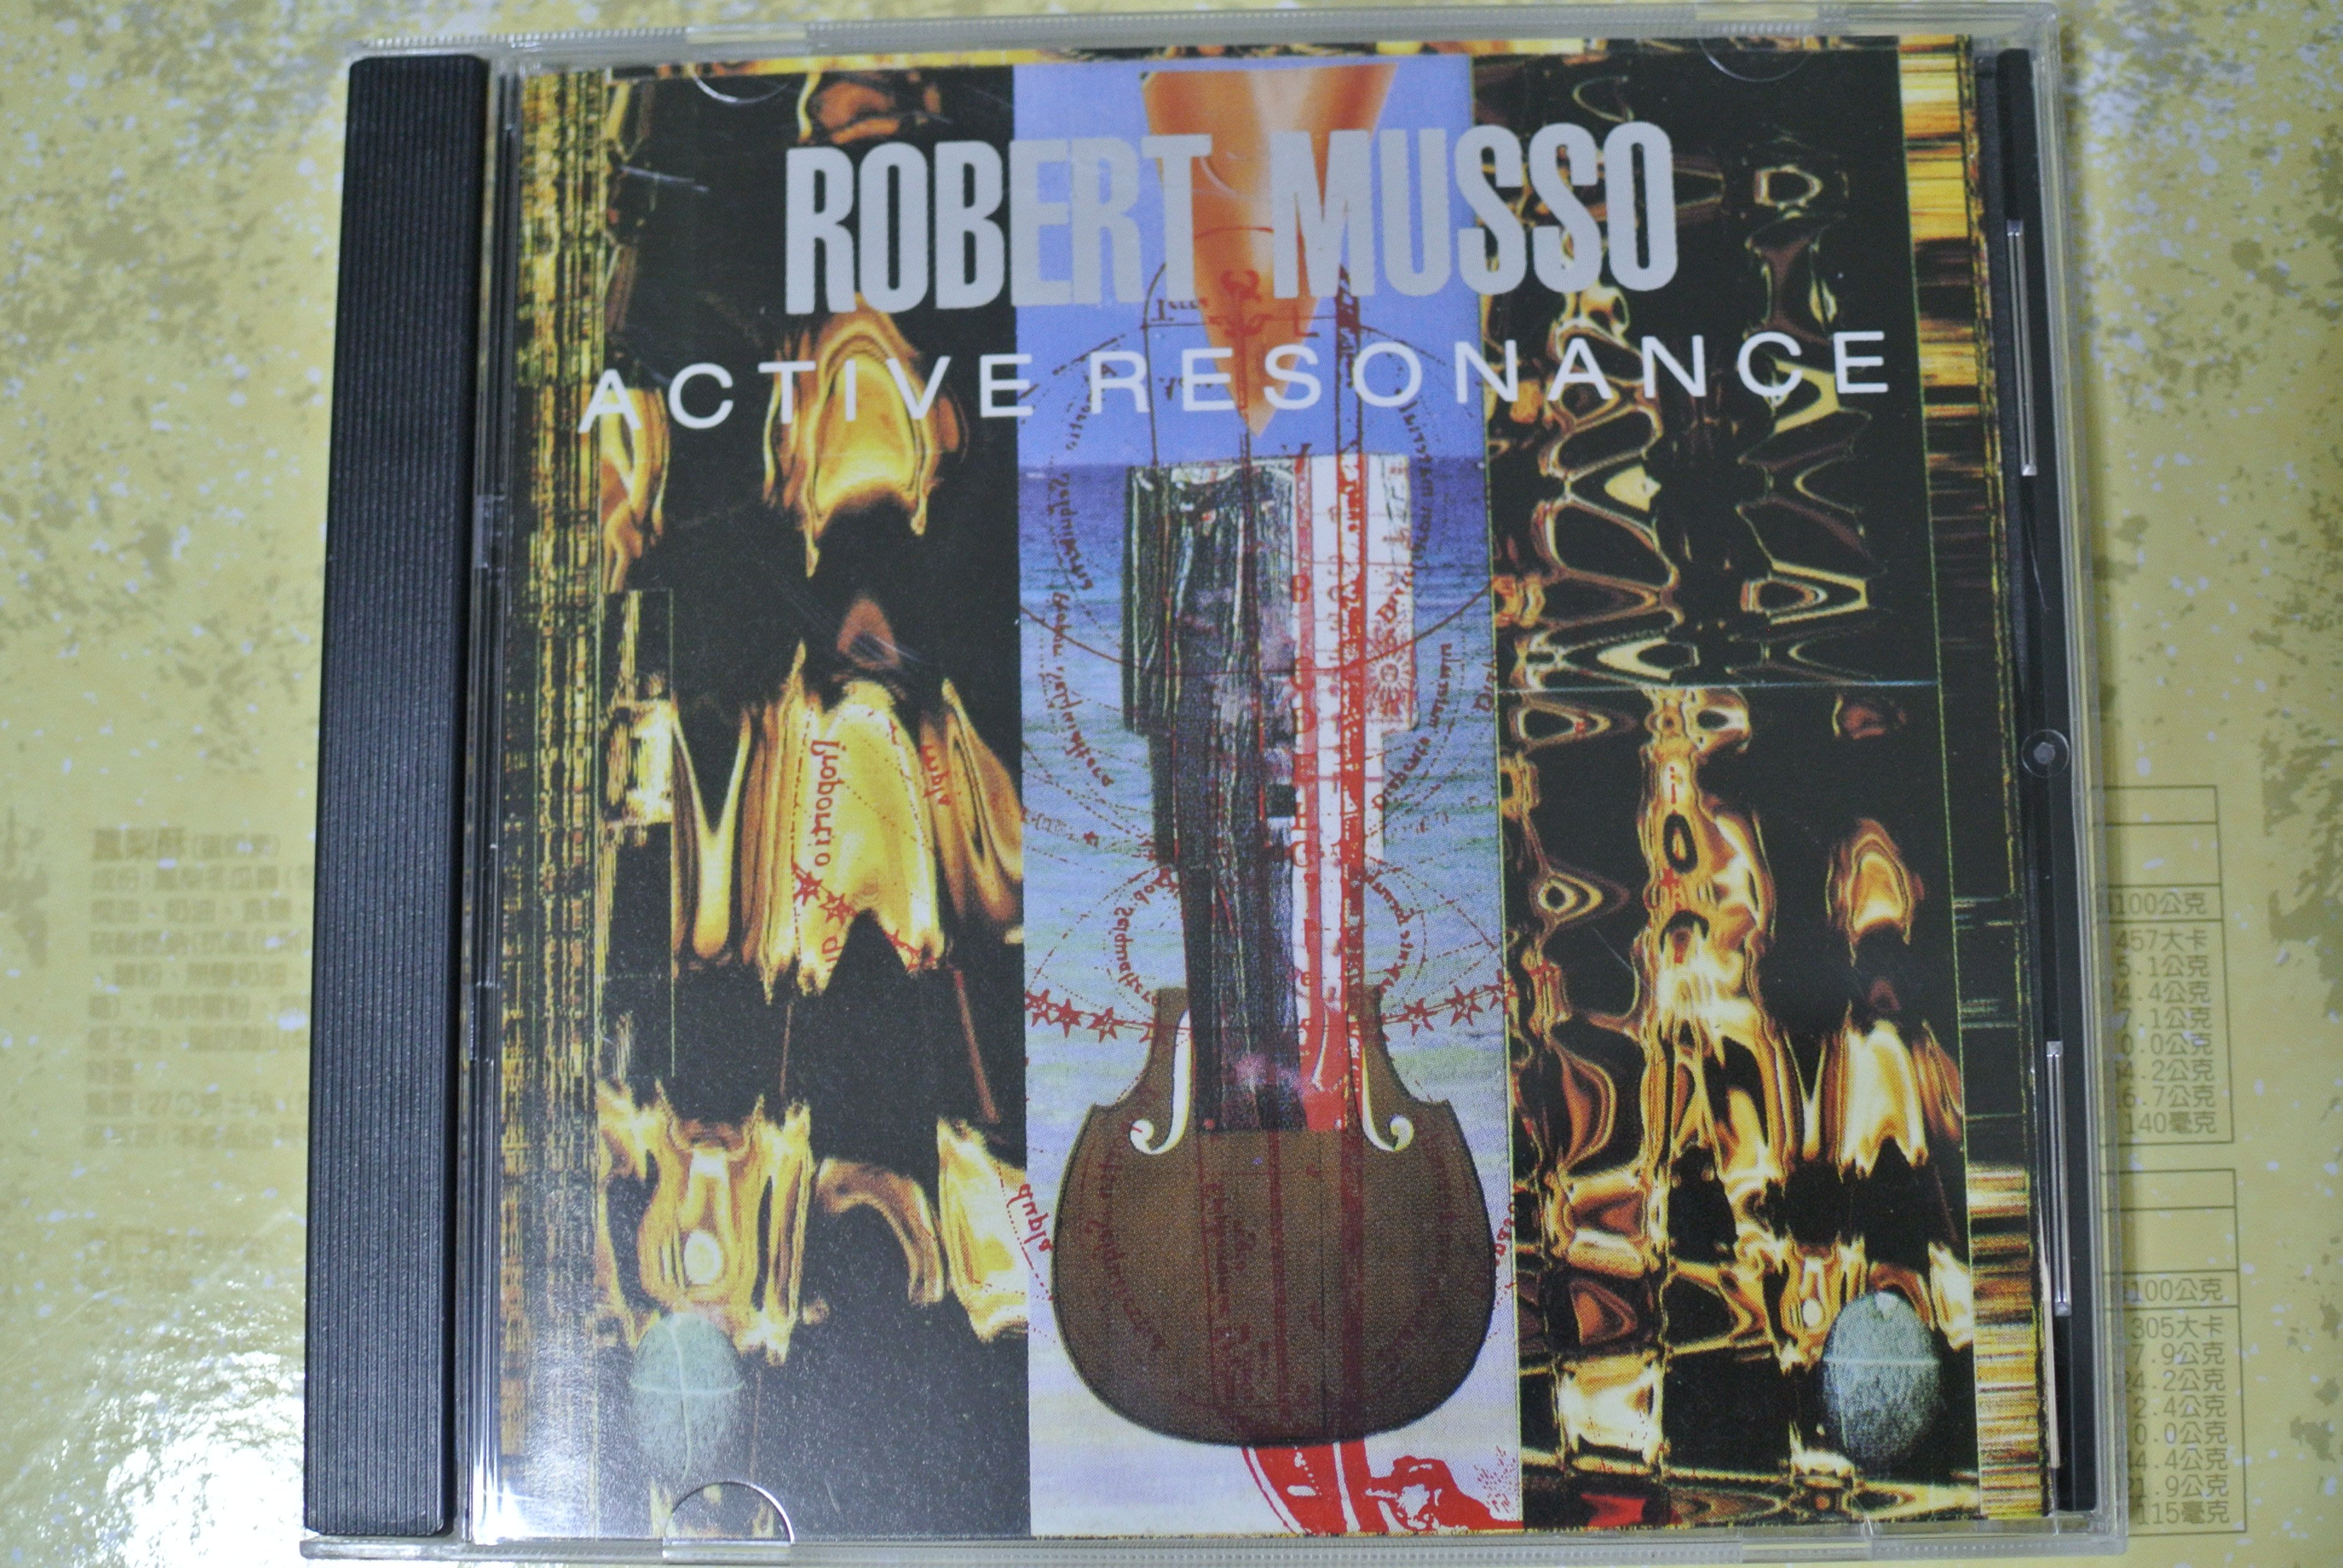 CD ~ ROBERT MUSSO   ACTIVE RESONANCE ~ 1992 MUWORKS